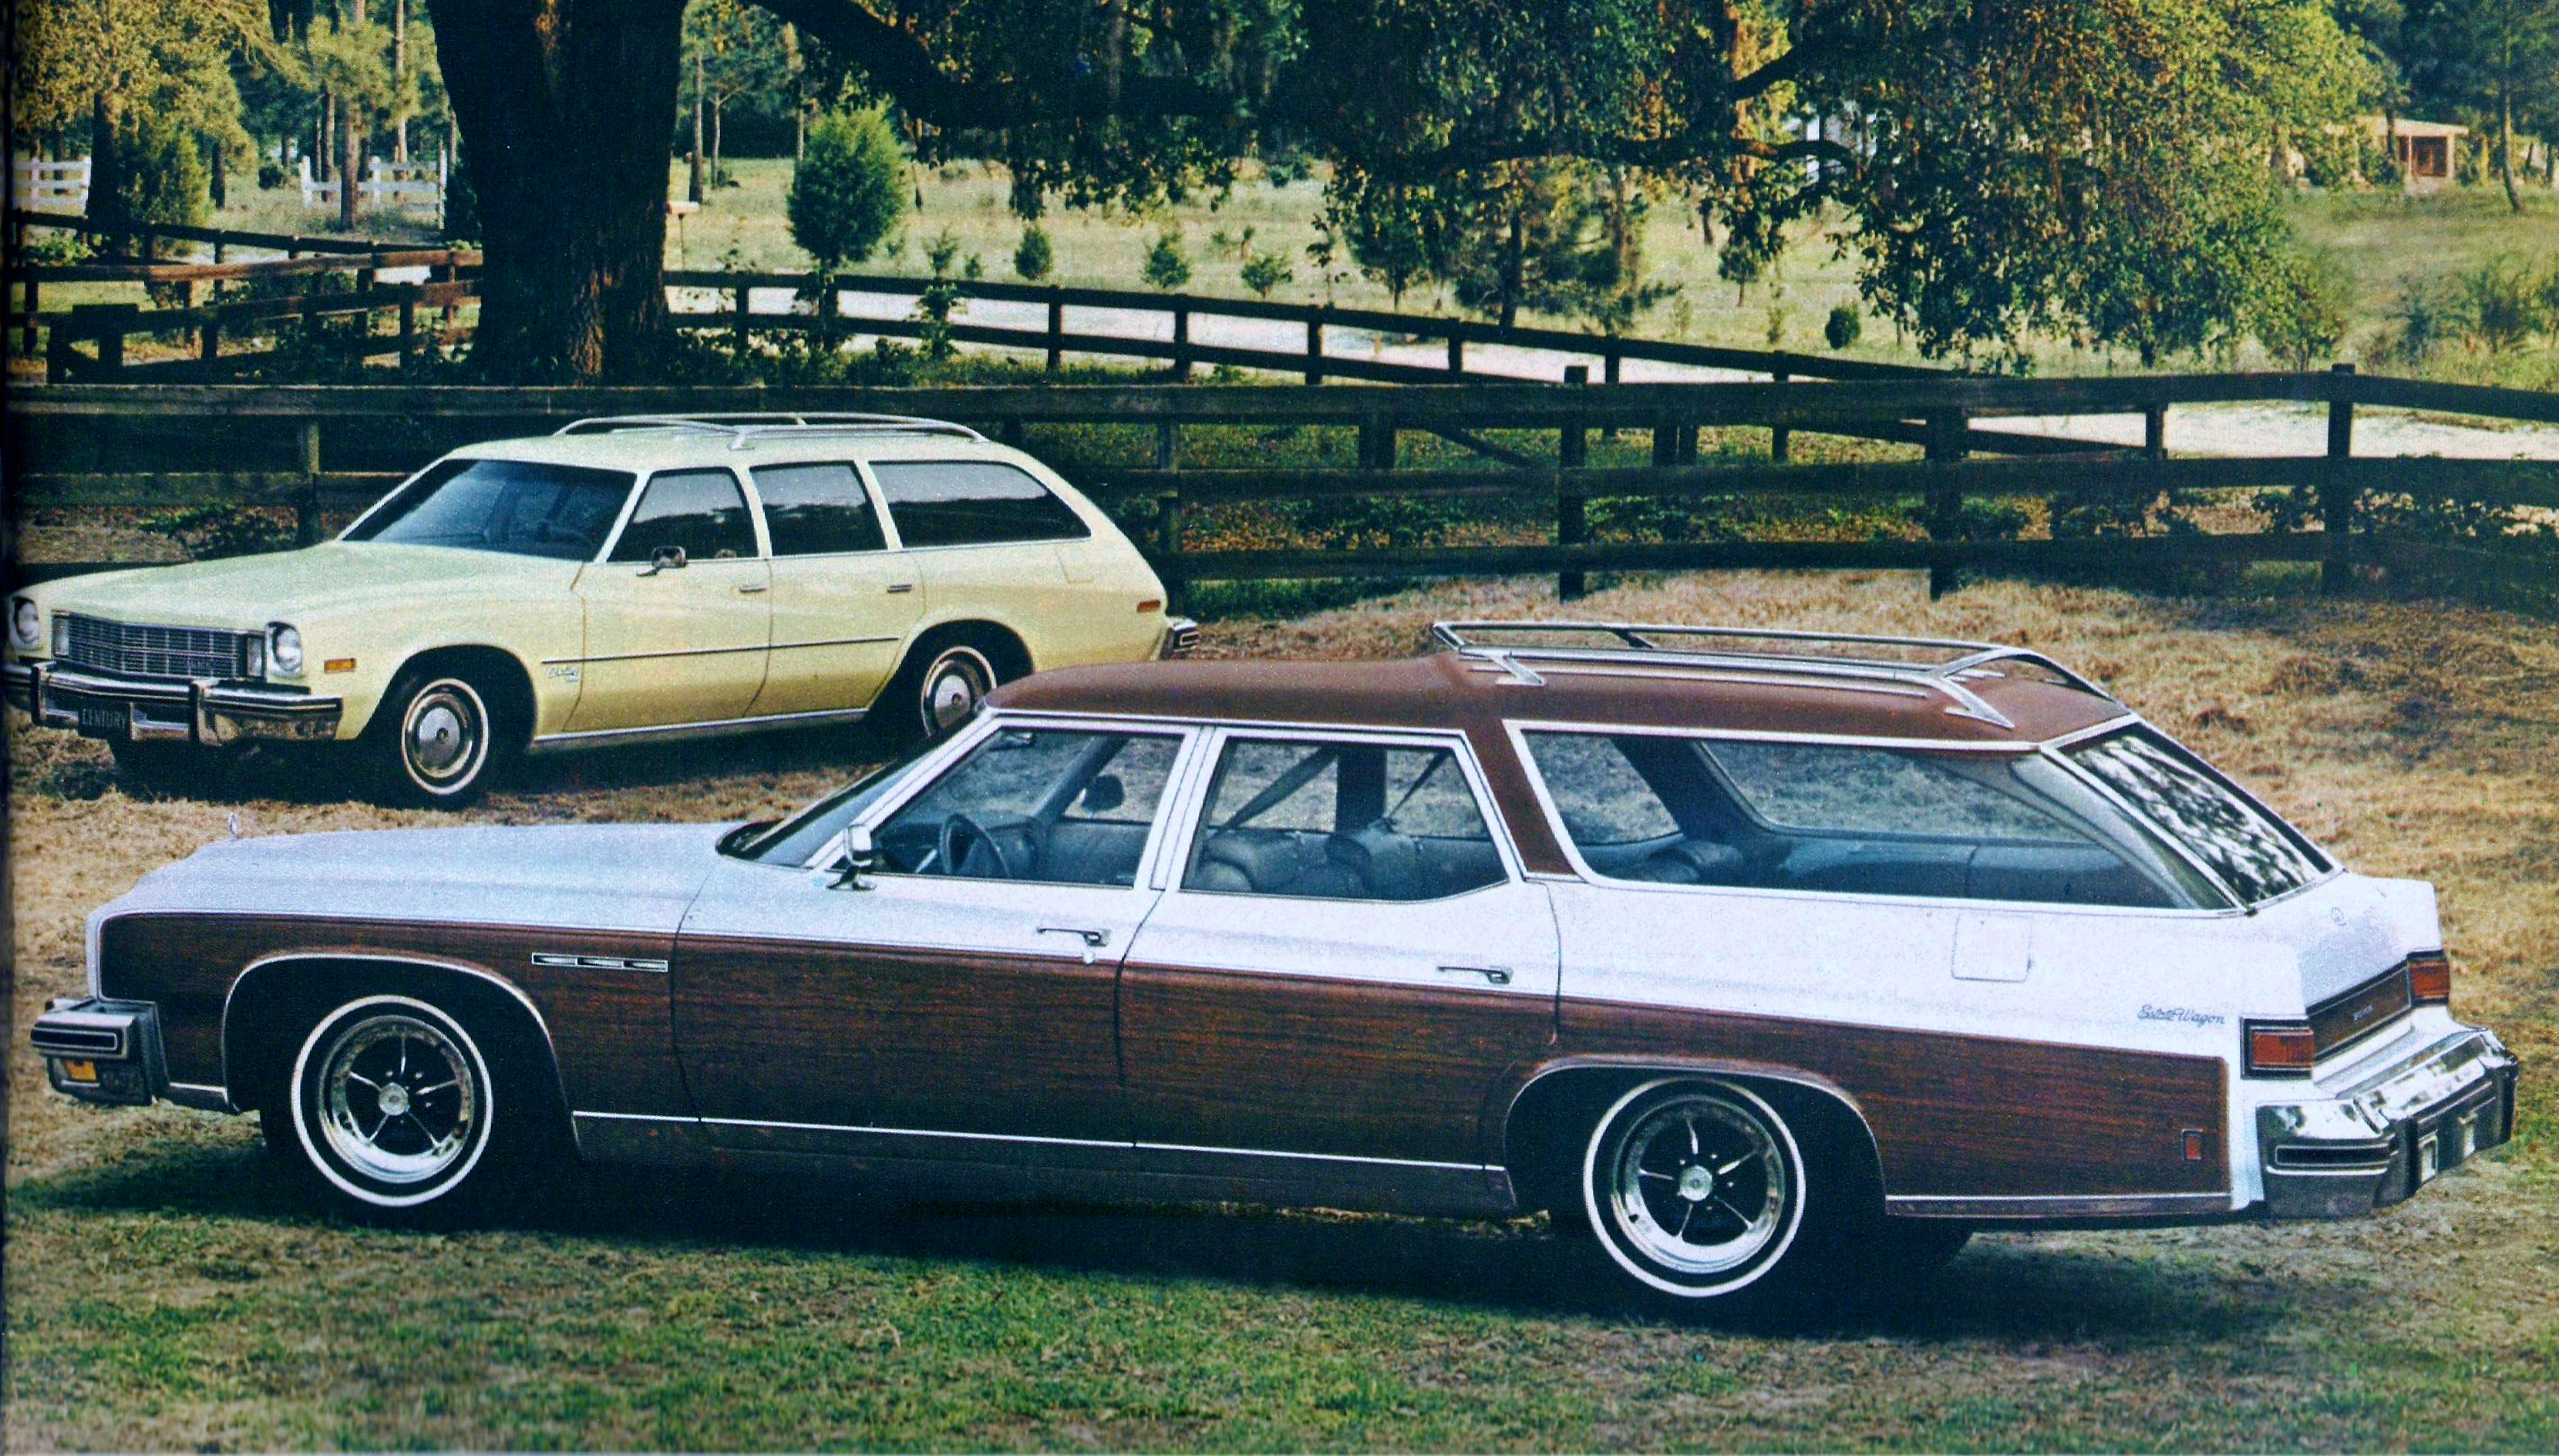 1974 Estate Wagon #1